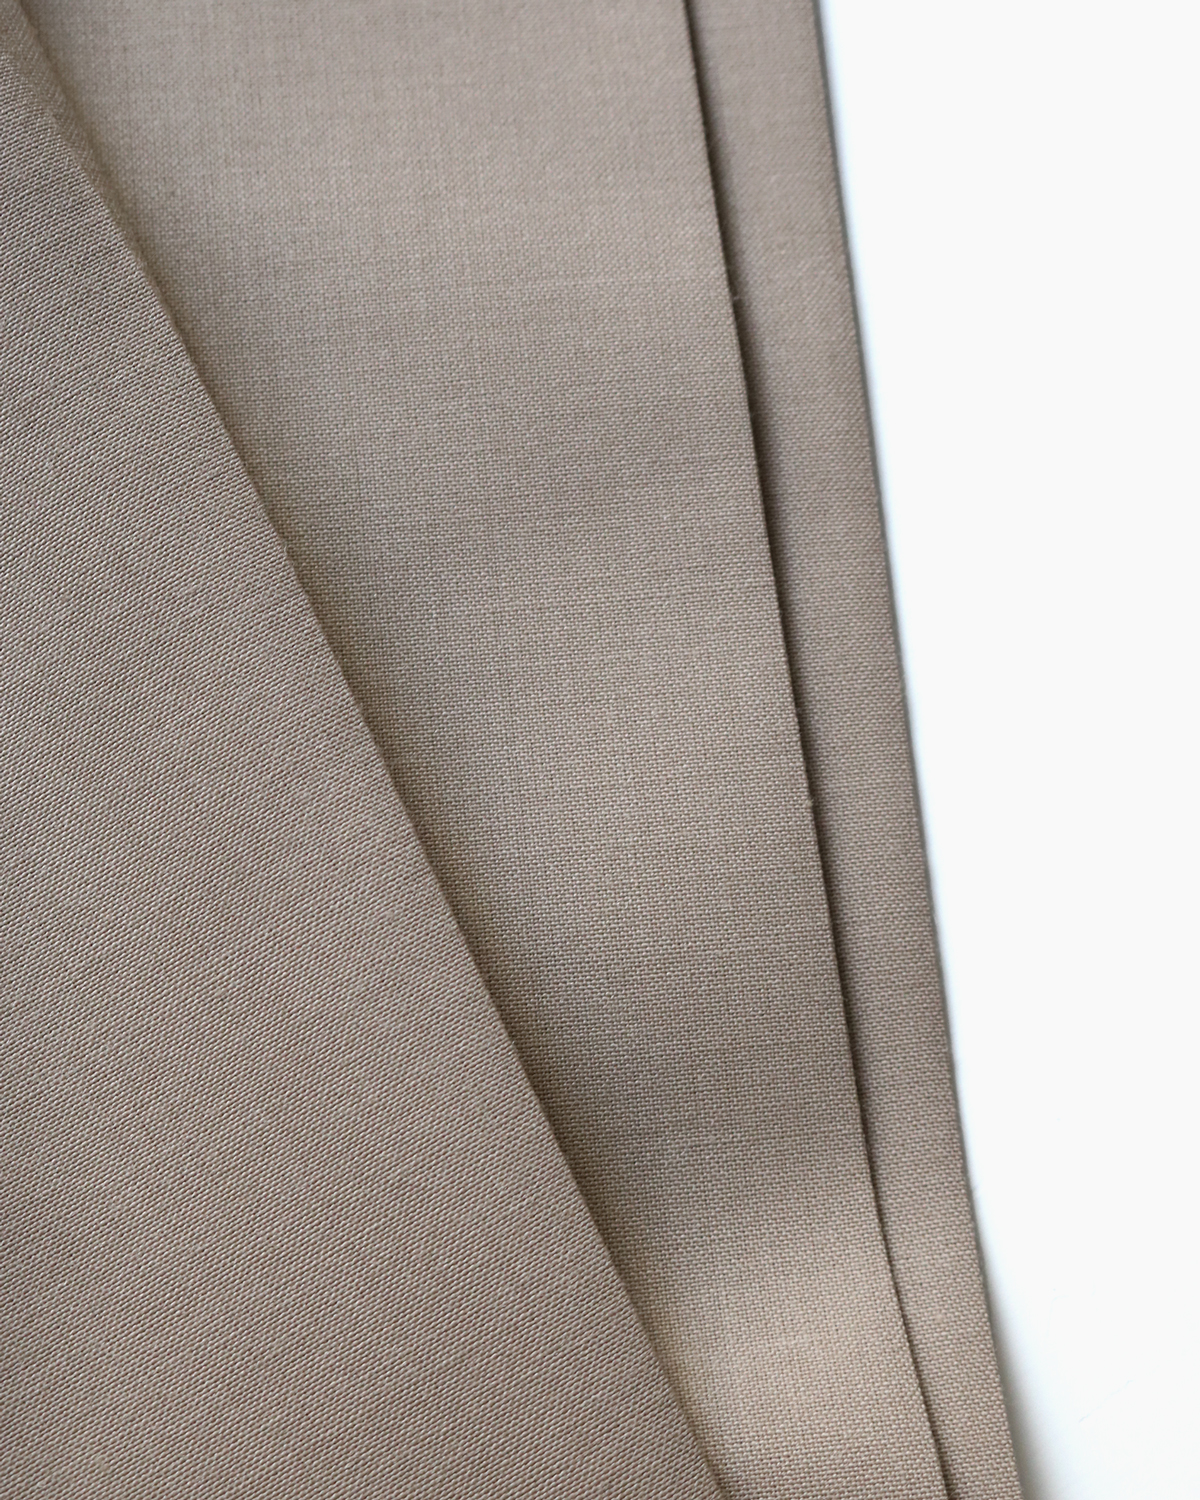 AWC TROPICAL|WIDE - Beige|NEAT